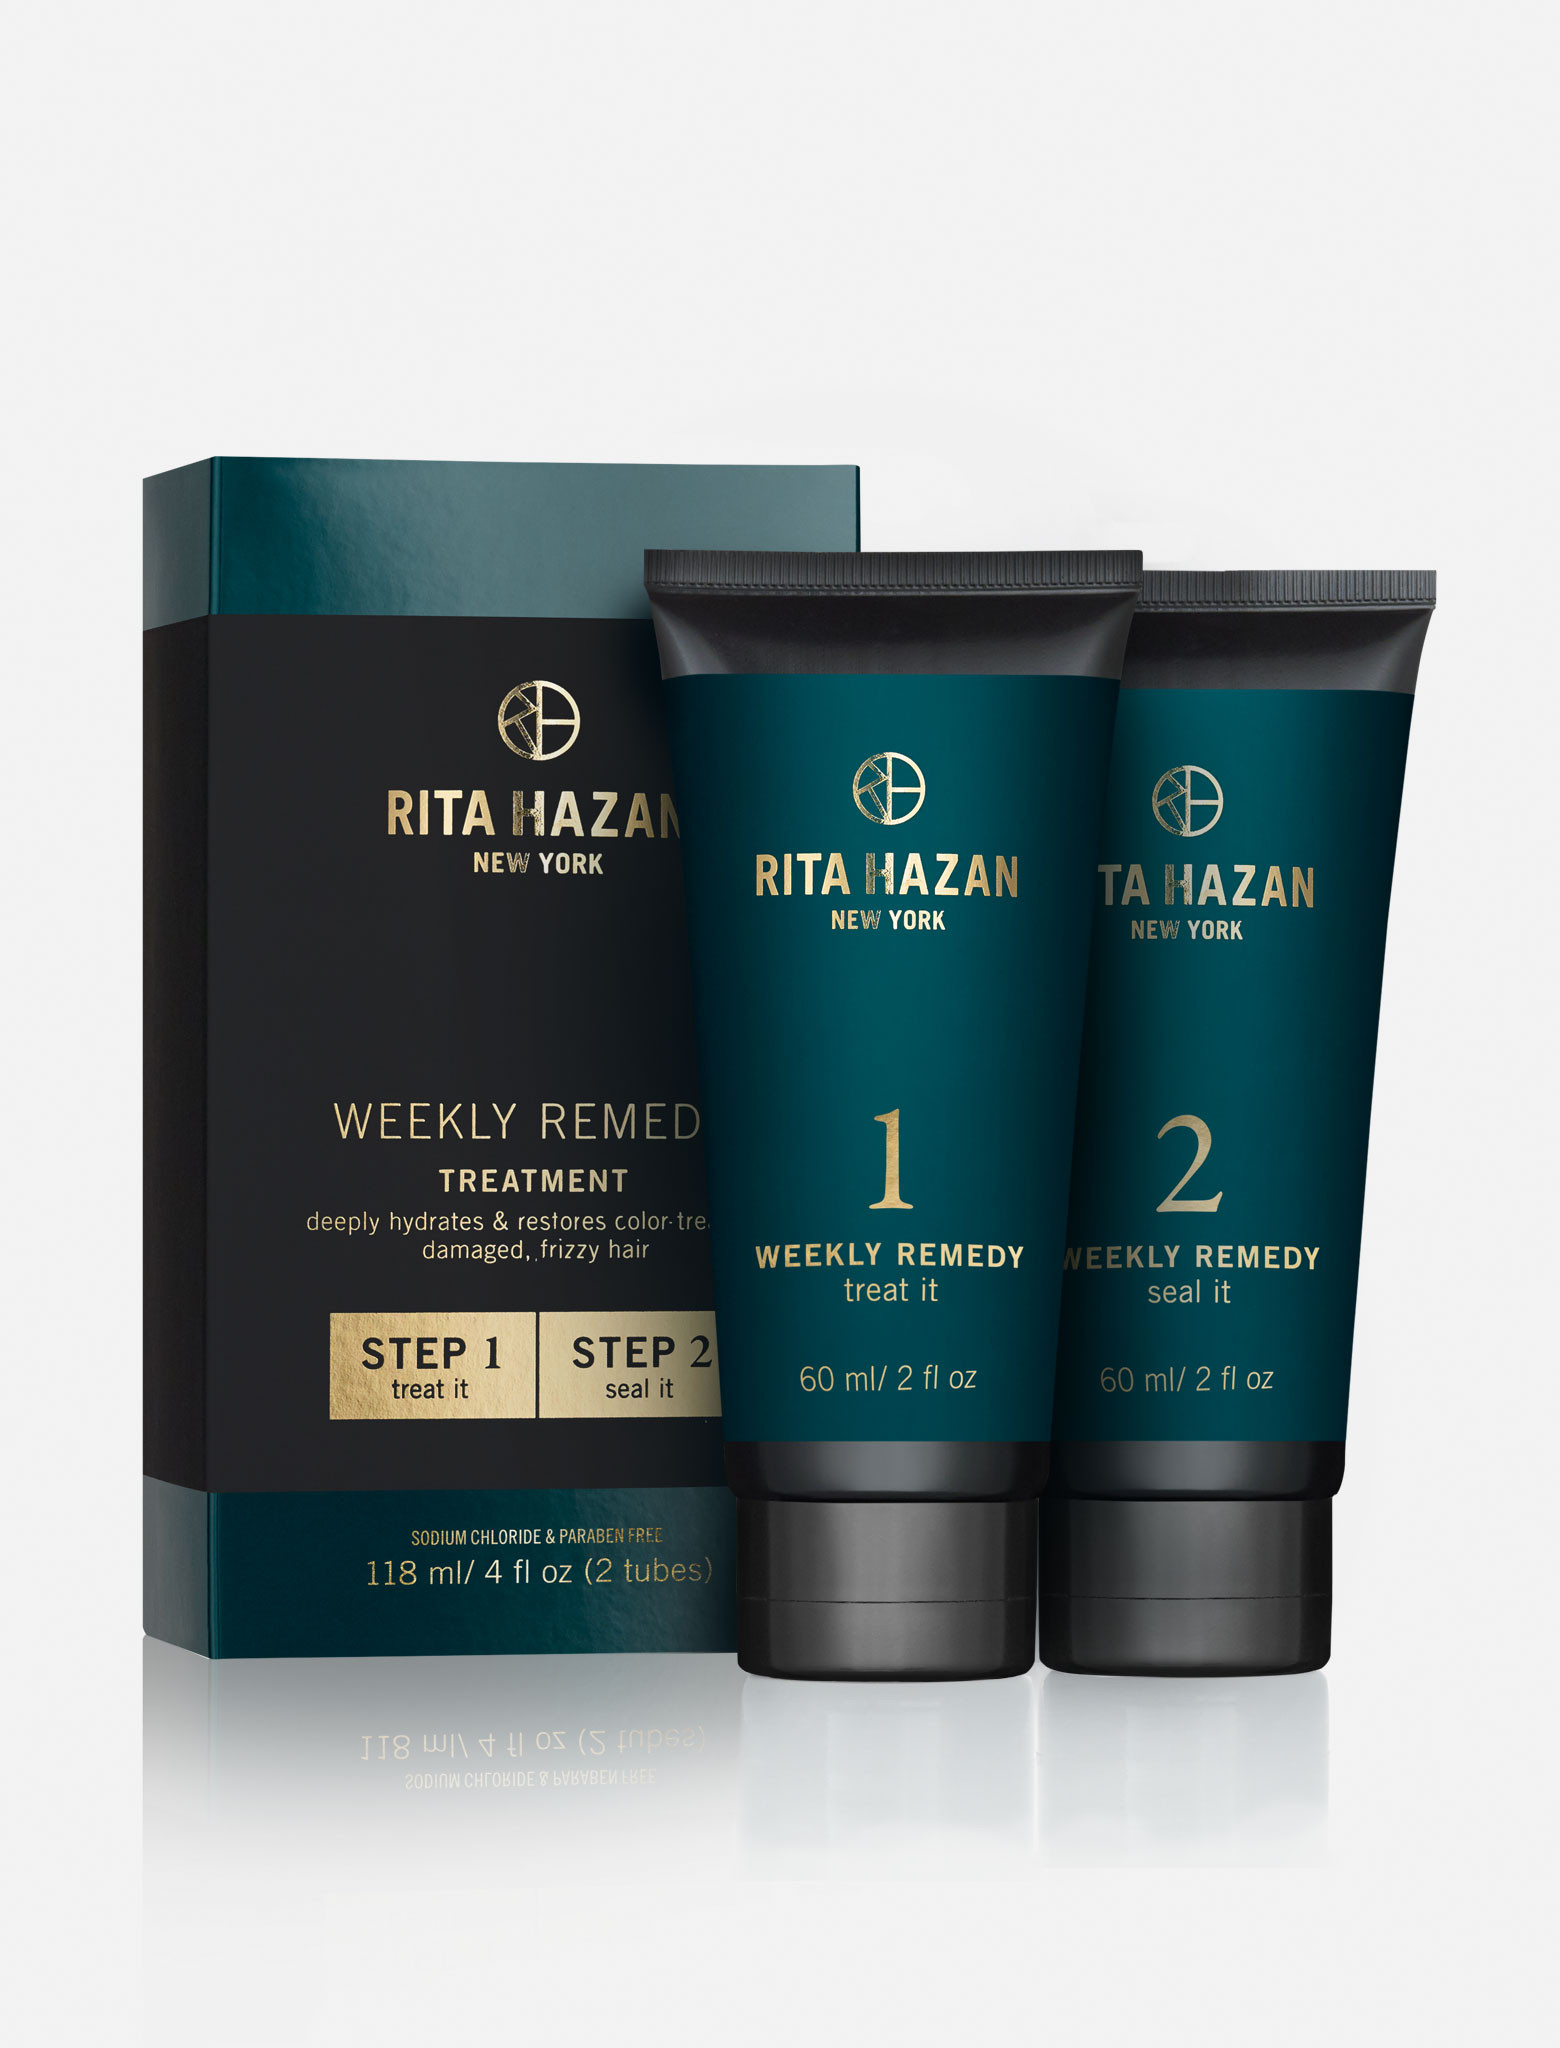 RITA HAZAN - Weekly Remedy Treatment £34